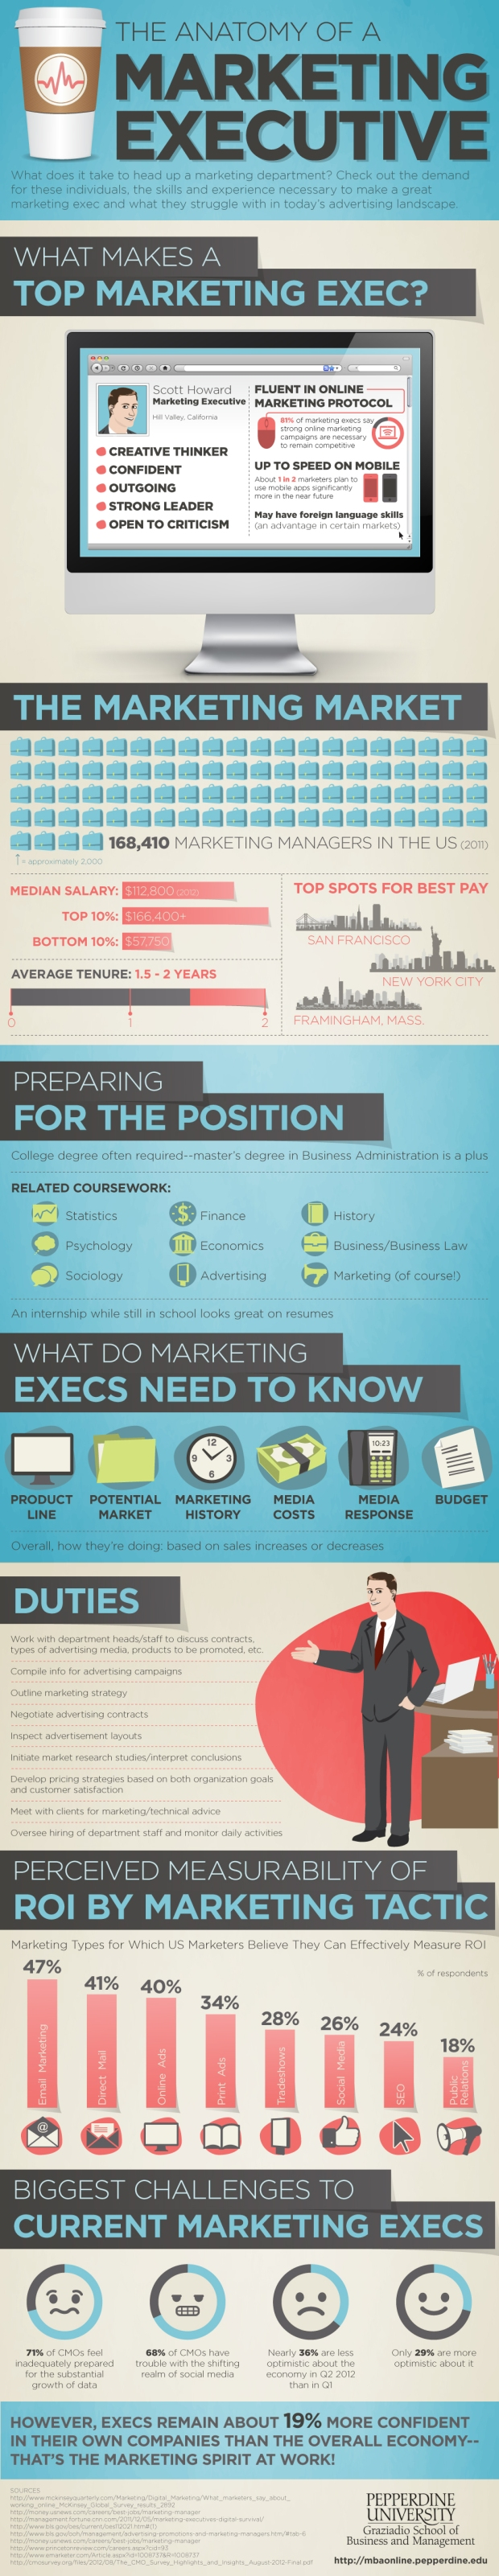 anatomy-of-a-marketing-executive_50b57e6736c4a